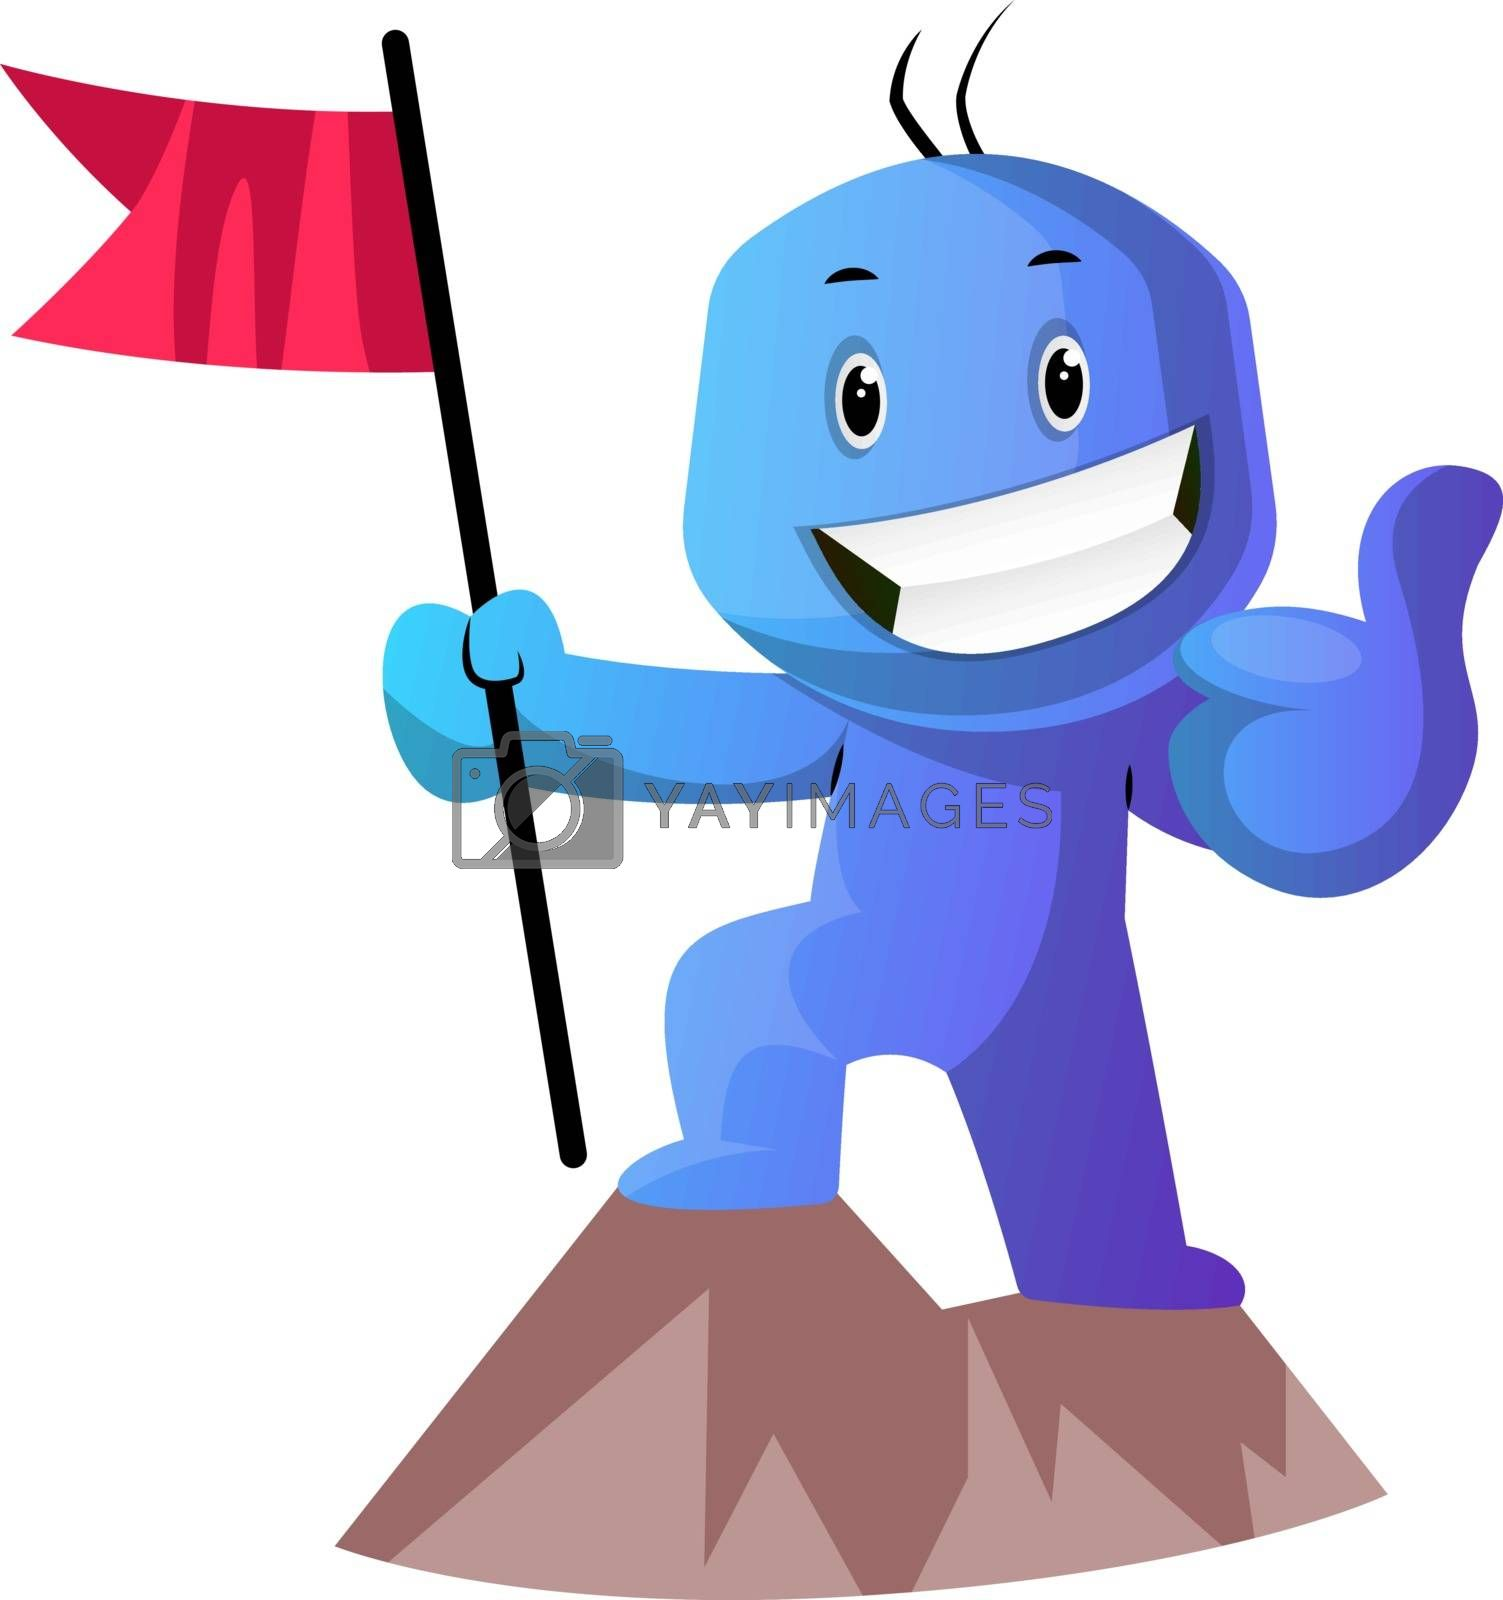 Royalty free image of Blue cartoon caracter on a mountain with a flag illustration vec by Morphart